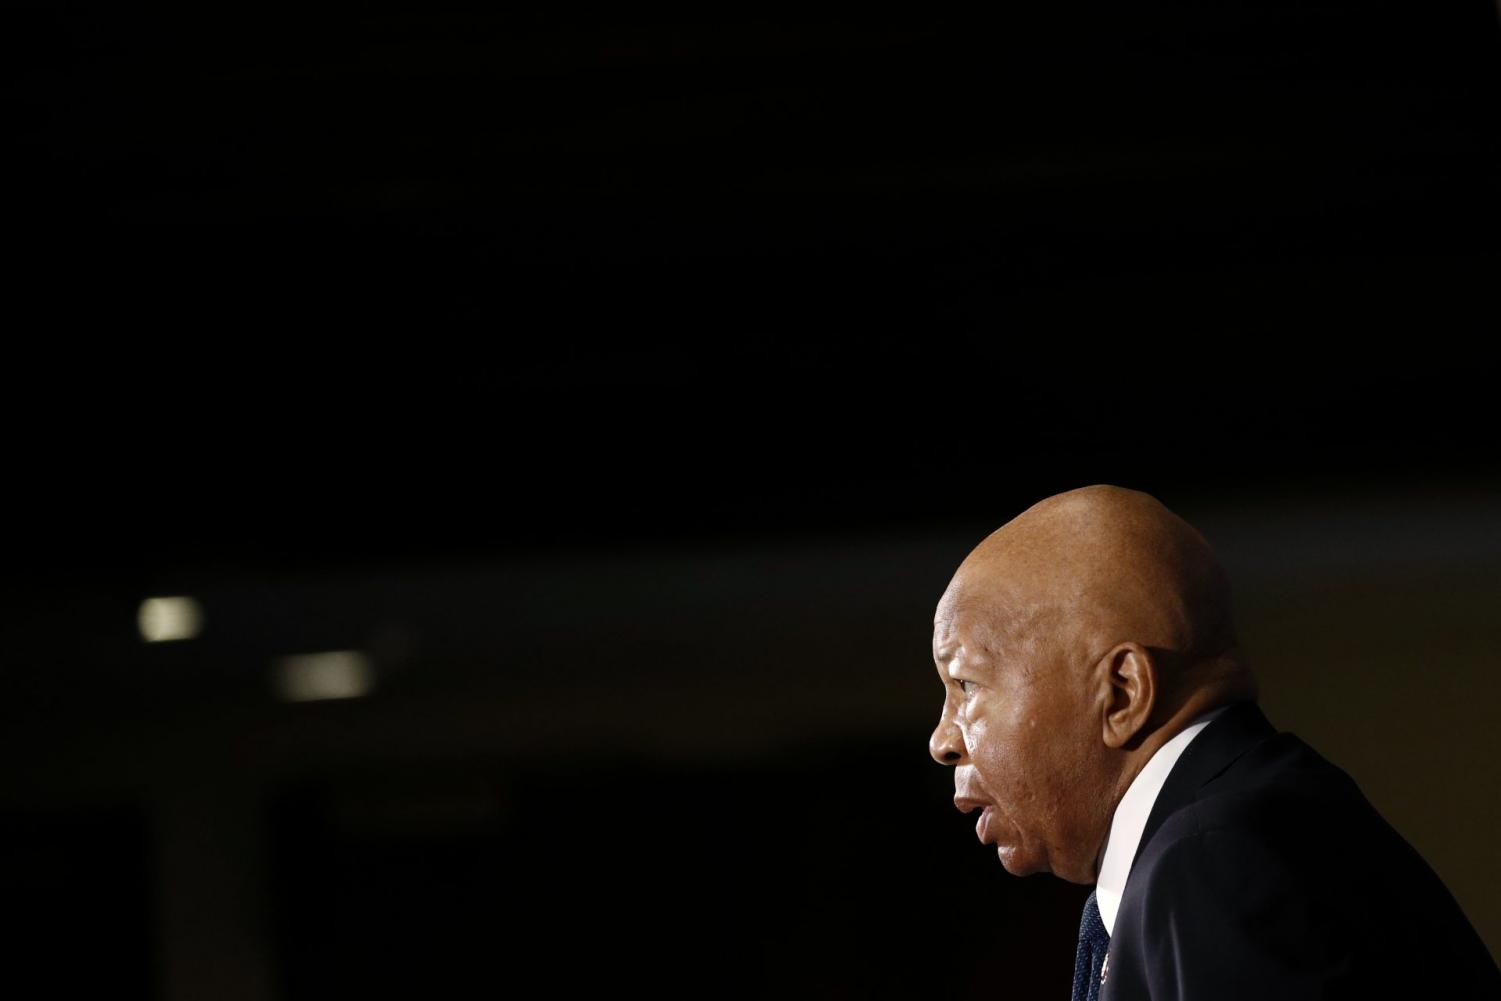 In this Aug. 7, 2019, file photo, Rep. Elijah Cummings, D-Md., speaks during a luncheon at the National Press Club in Washington. Cummings, a sharecropper's son who rose to become the powerful chairman of one of the U.S. House committees leading an impeachment inquiry of President Donald Trump, died Thursday, Oct. 17, 2019, of complications from longstanding health issues. He was 68.